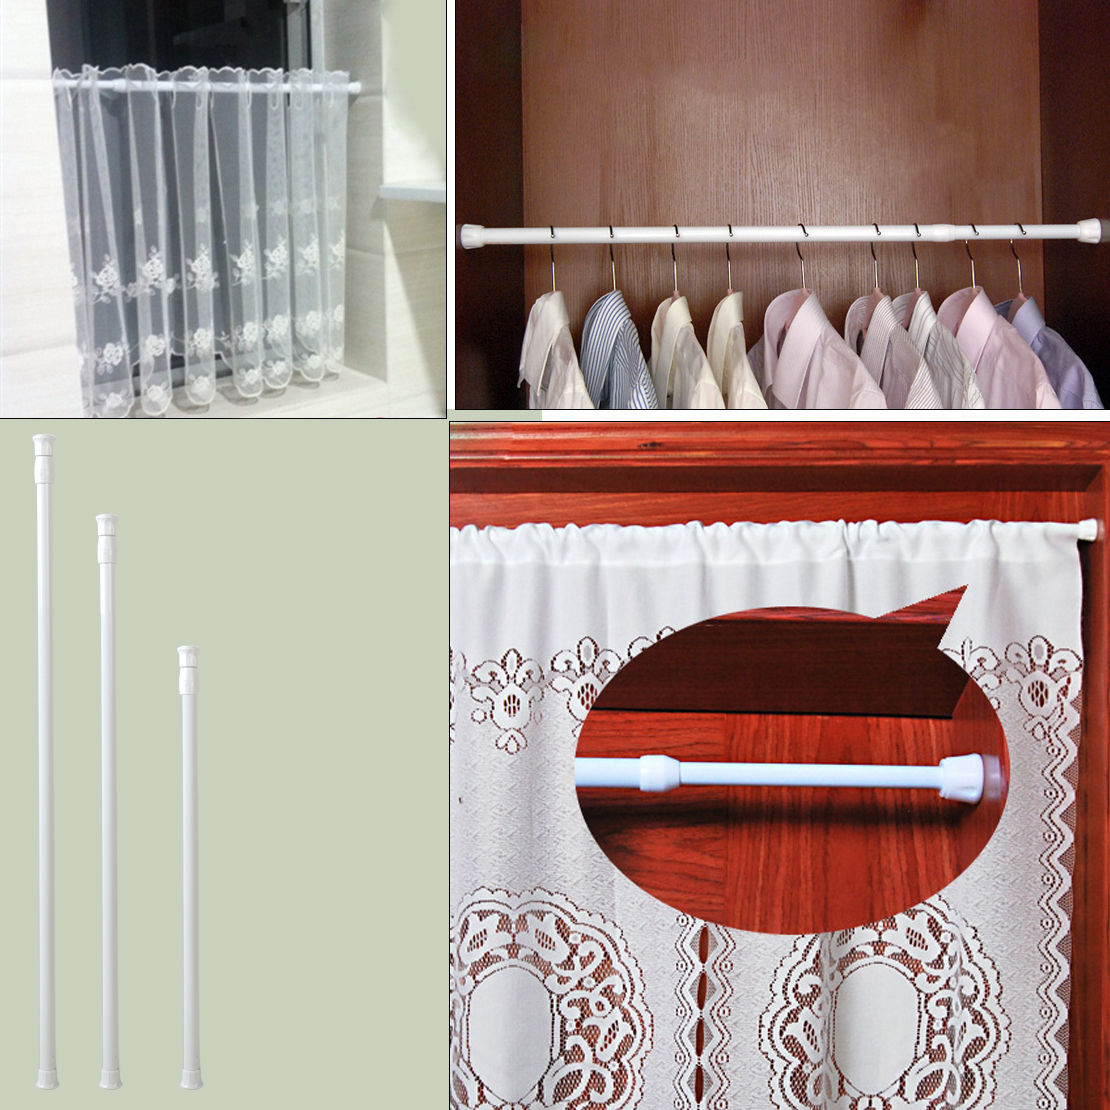 High Carbon Steel Adjustable Rod Tension Bathroom Curtain Extensible Rod Hanger P20